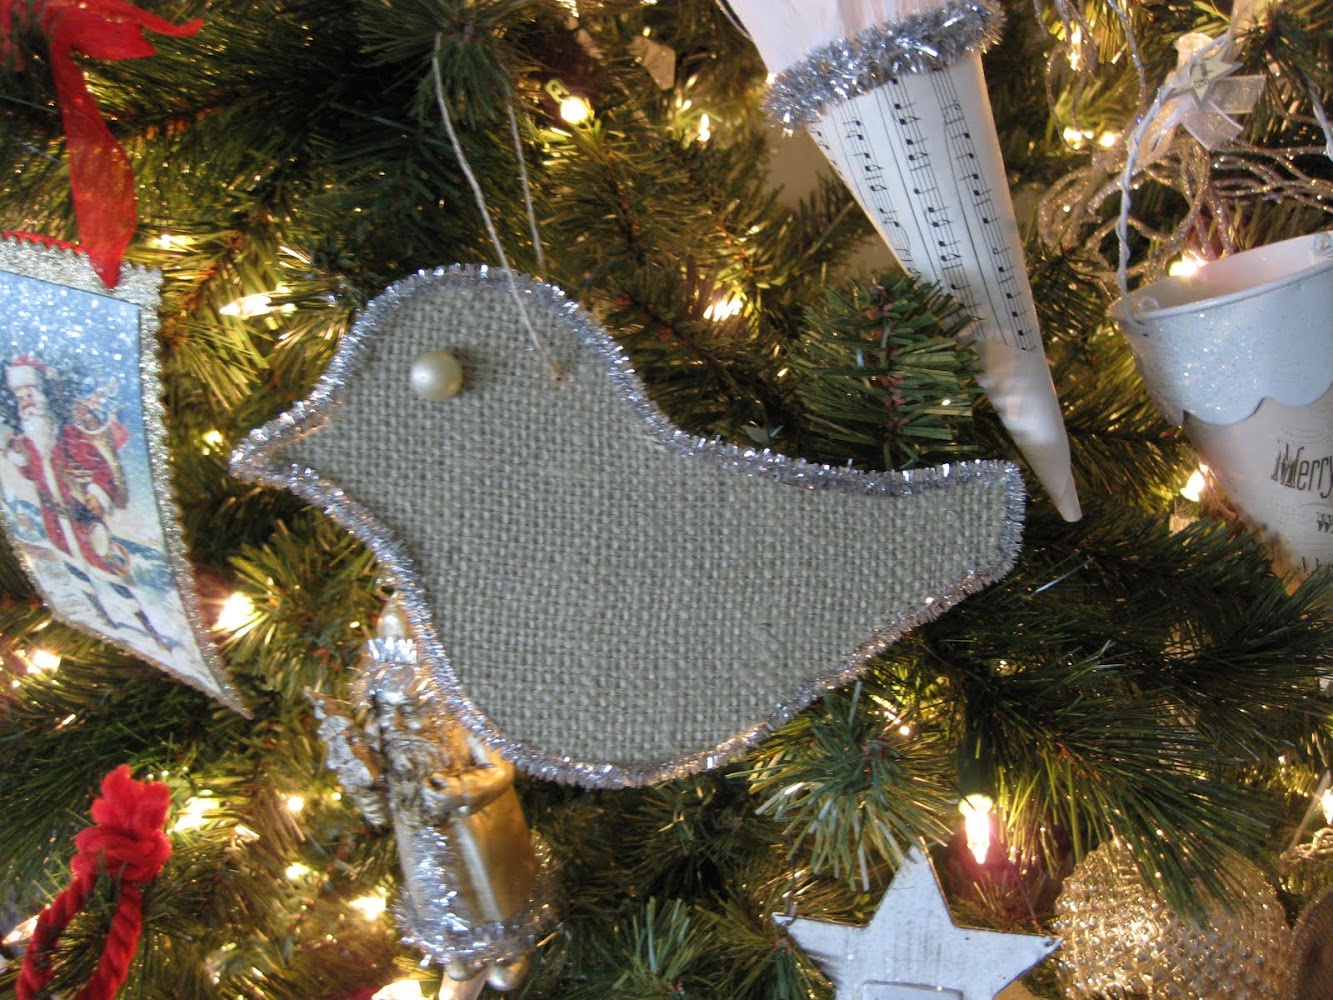 a little birdie ornament & a look at my finished tree